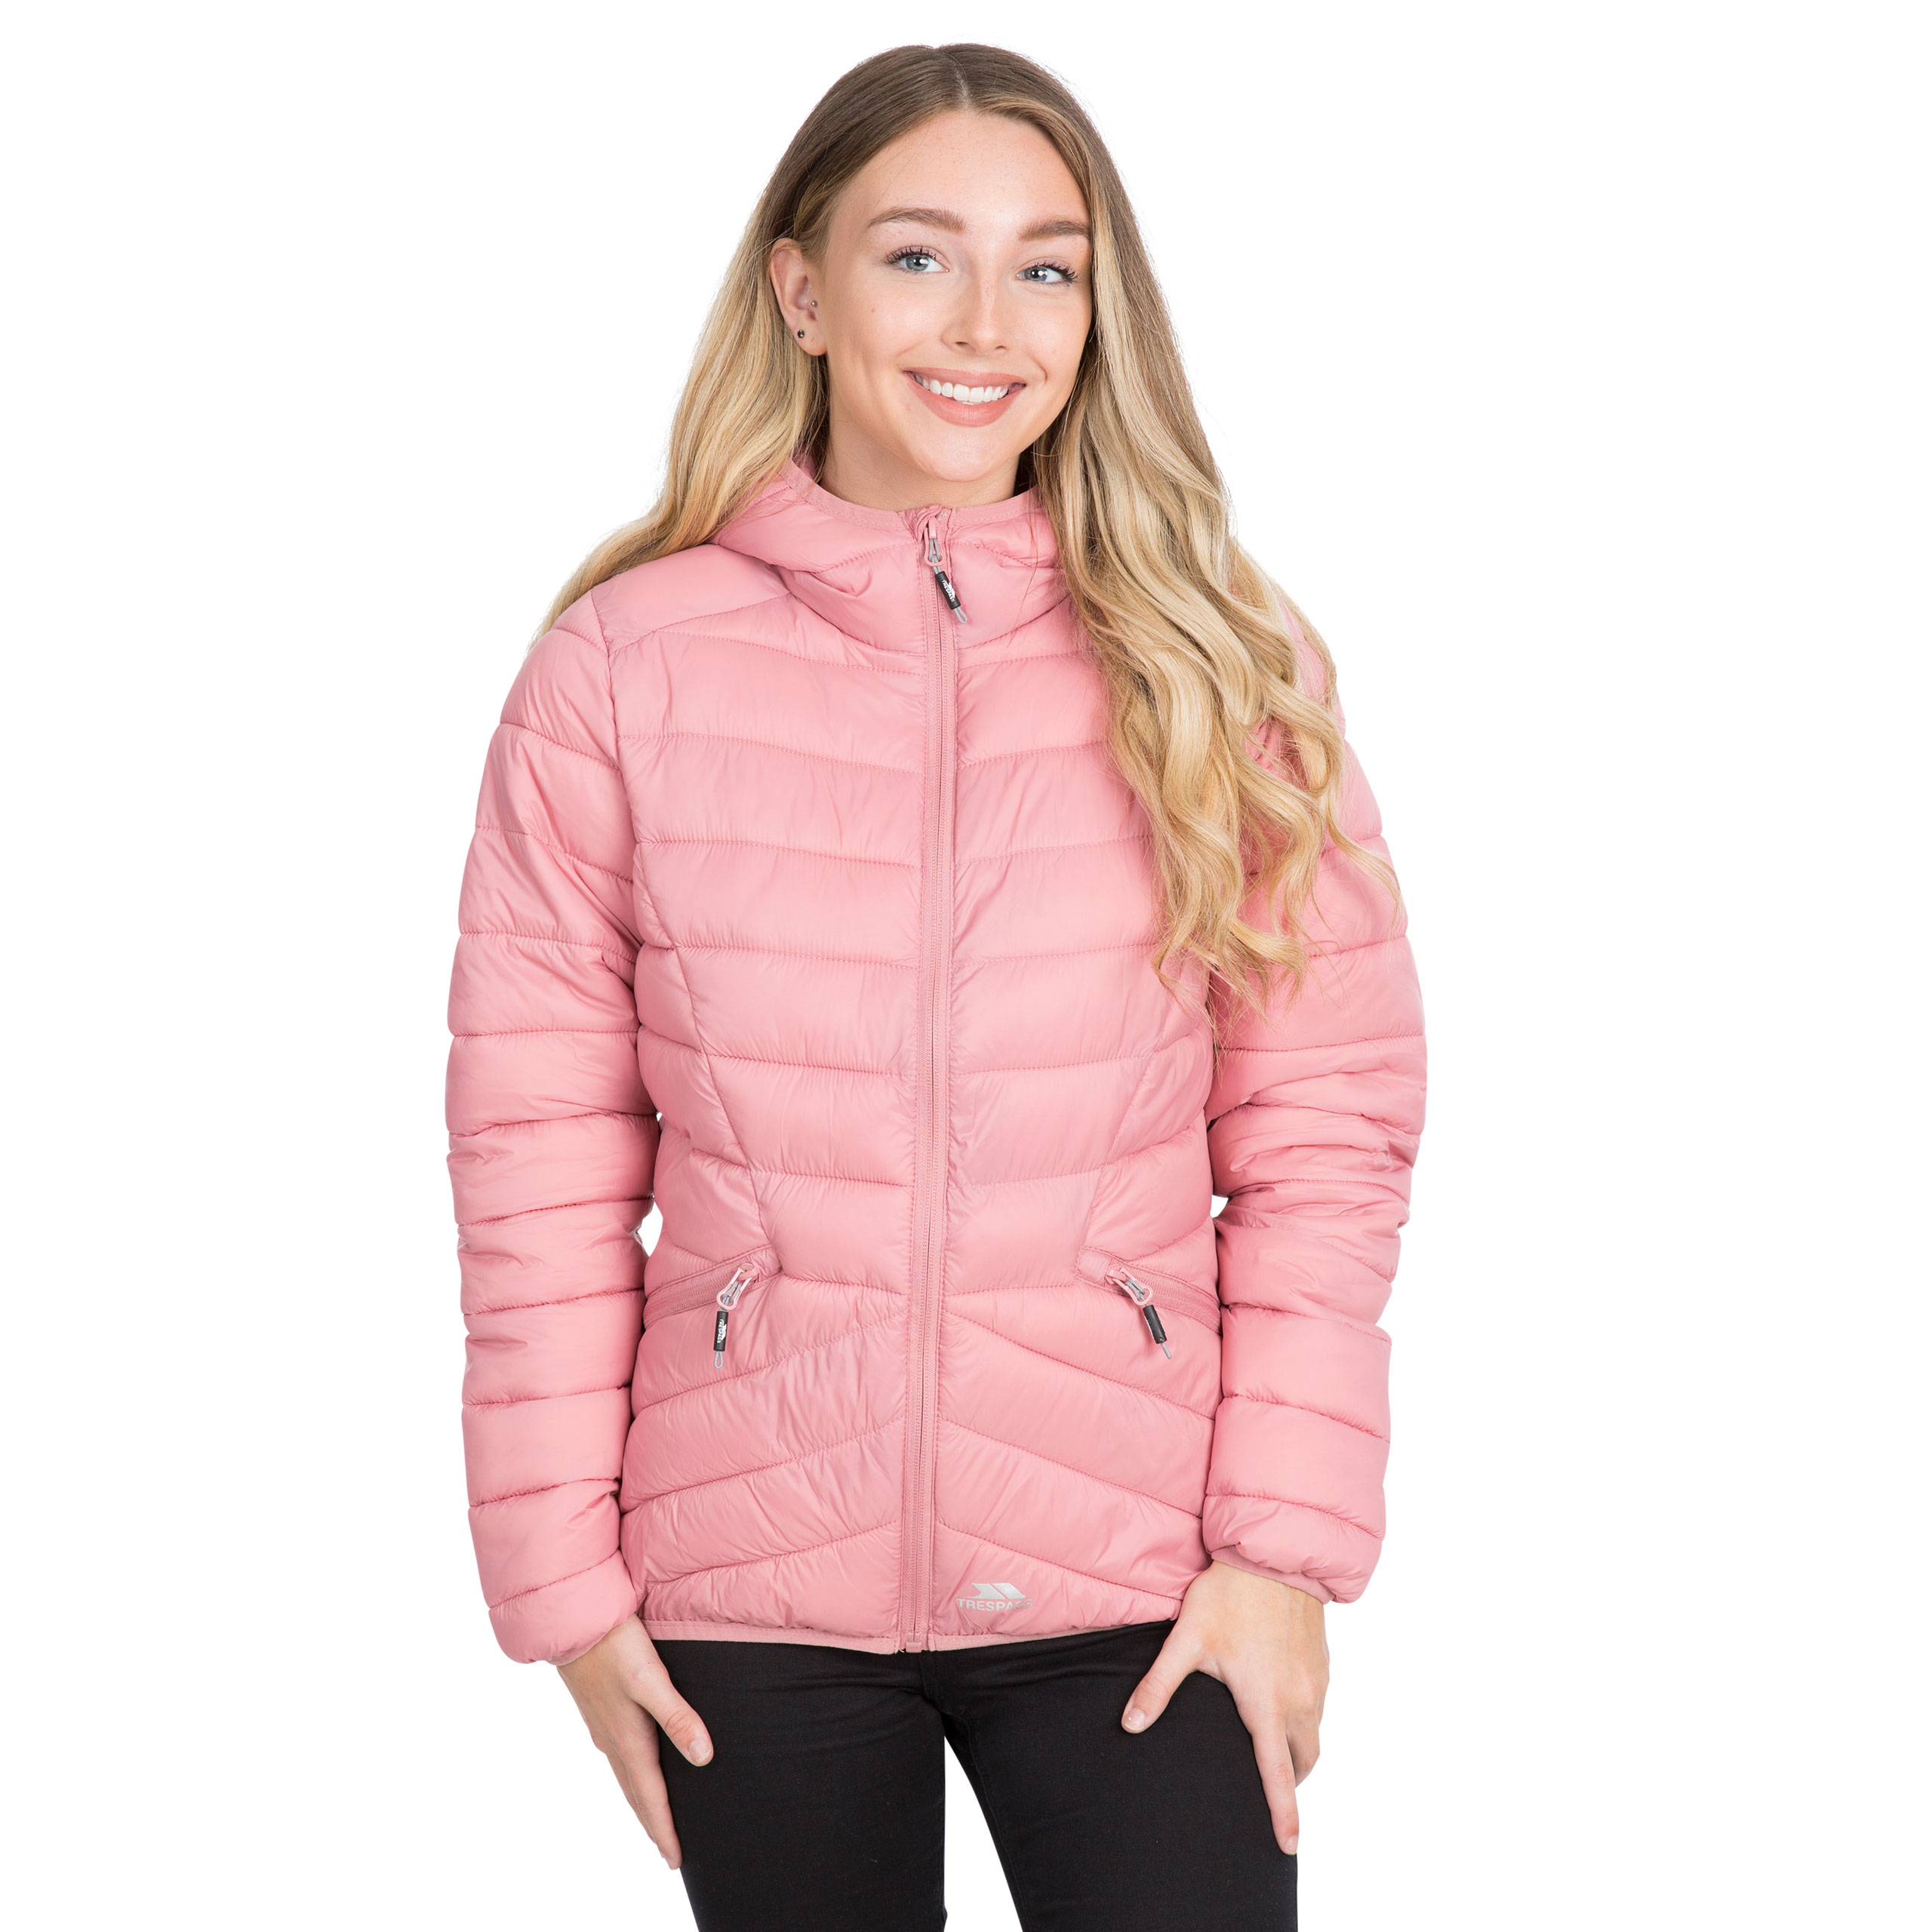 Trespass-Alyssa-Womens-Padded-Jacket-Puffer-With-Hood-For-Ladies thumbnail 17